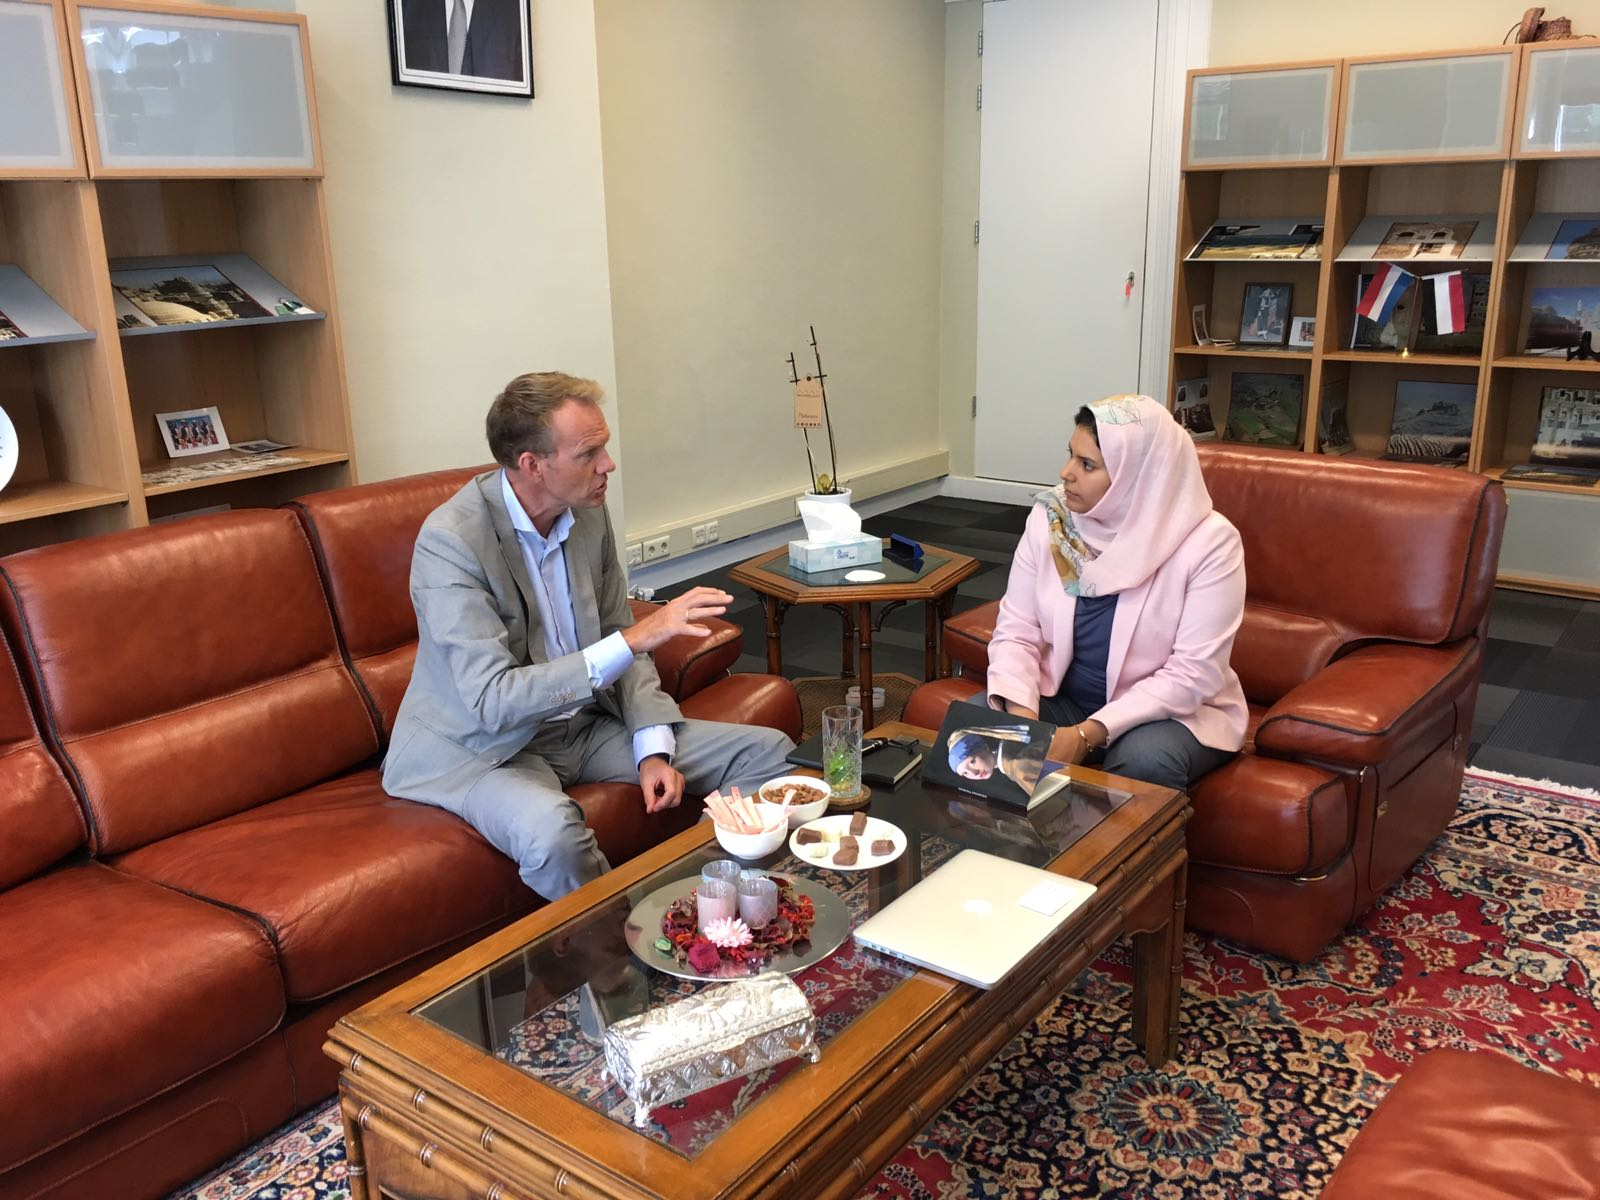 Contributions Of Care Netherlands In Yemen Discussed